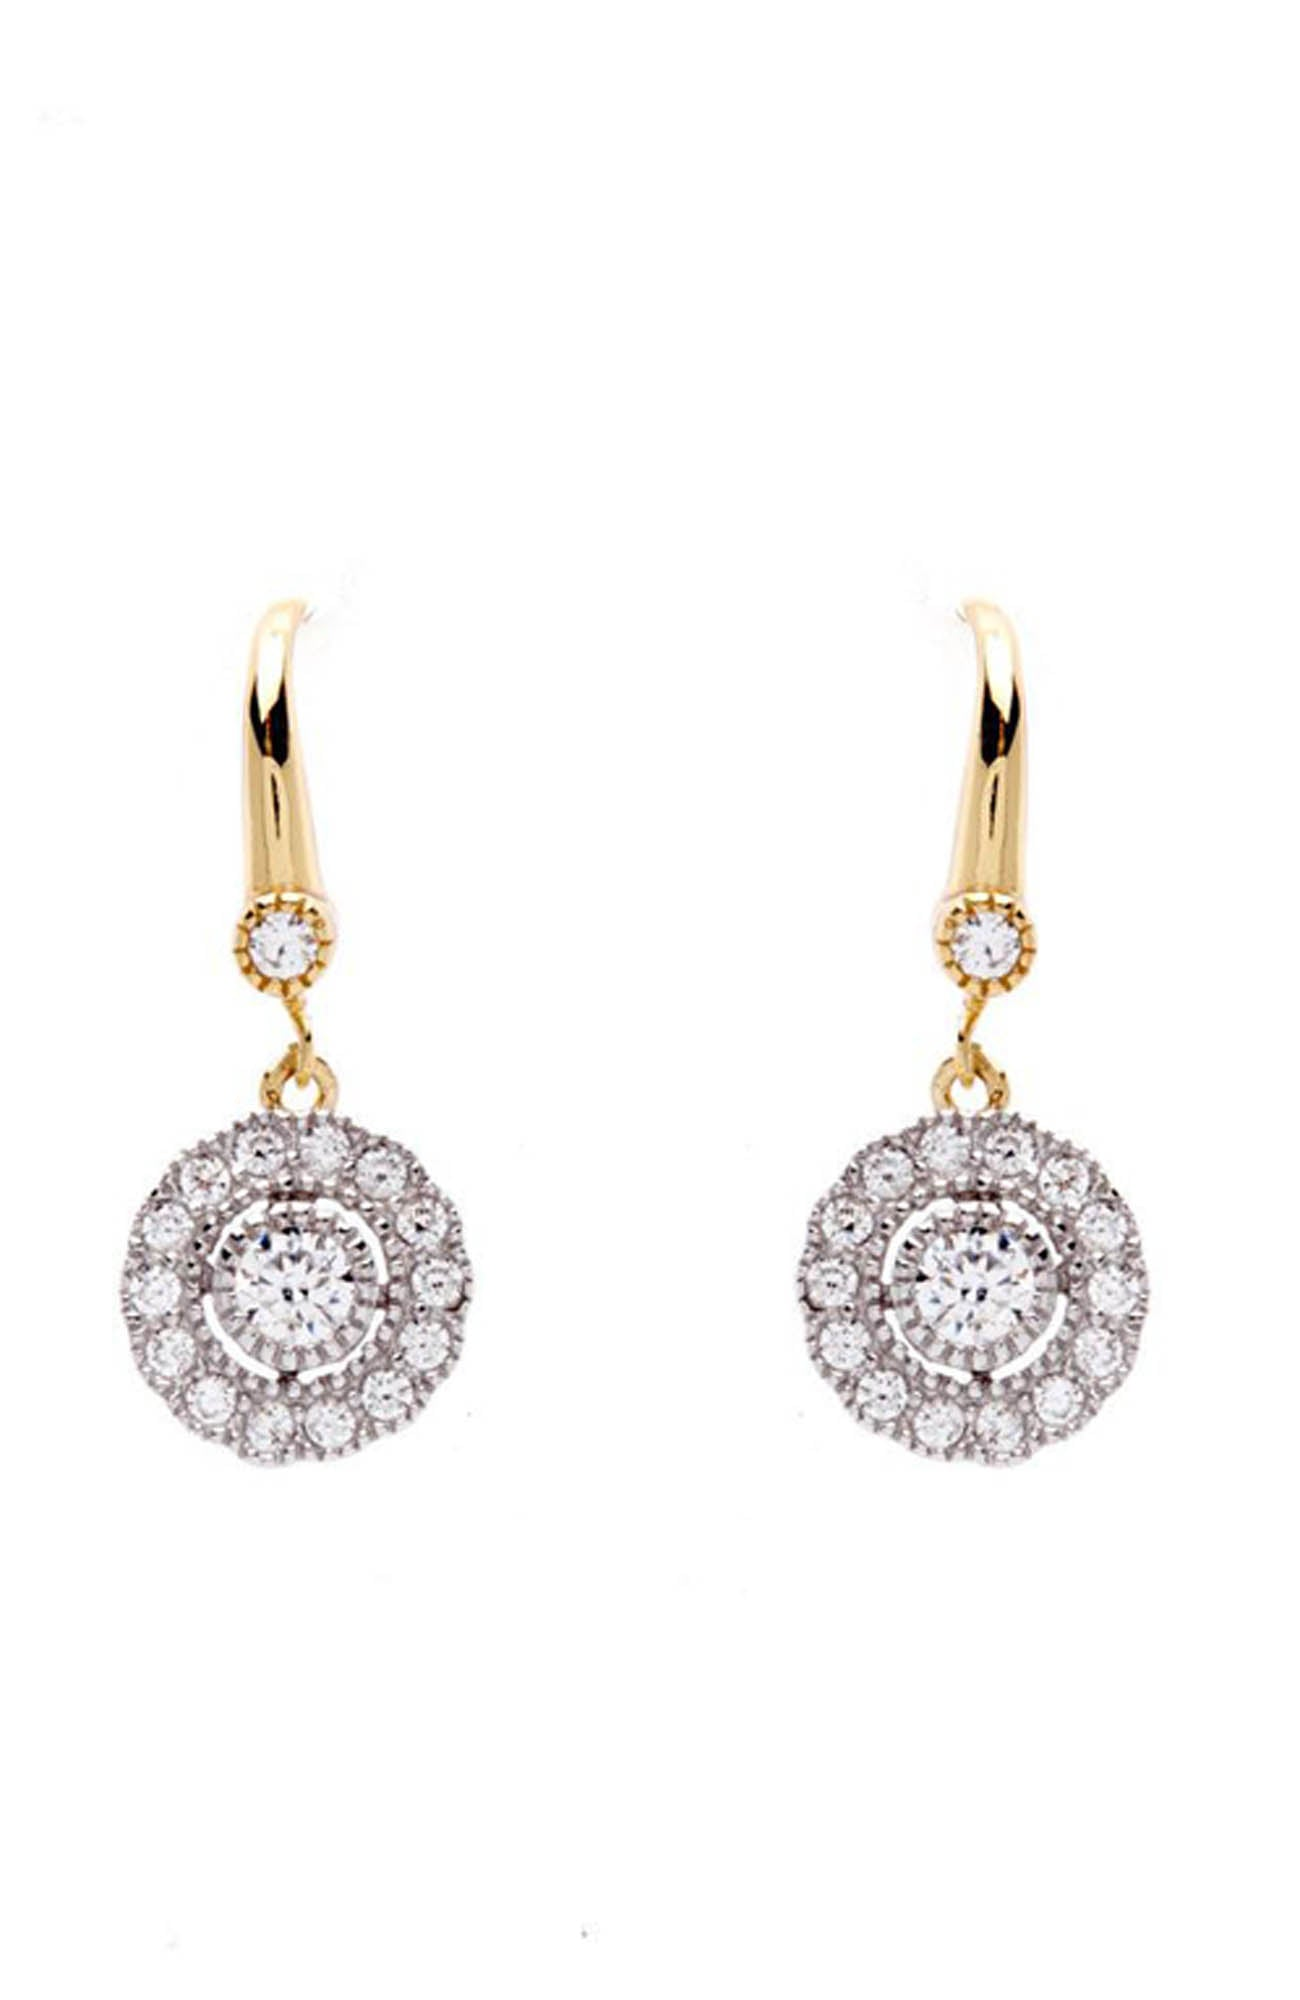 Rhodium Plated Gold Flower Earrings on French Hook